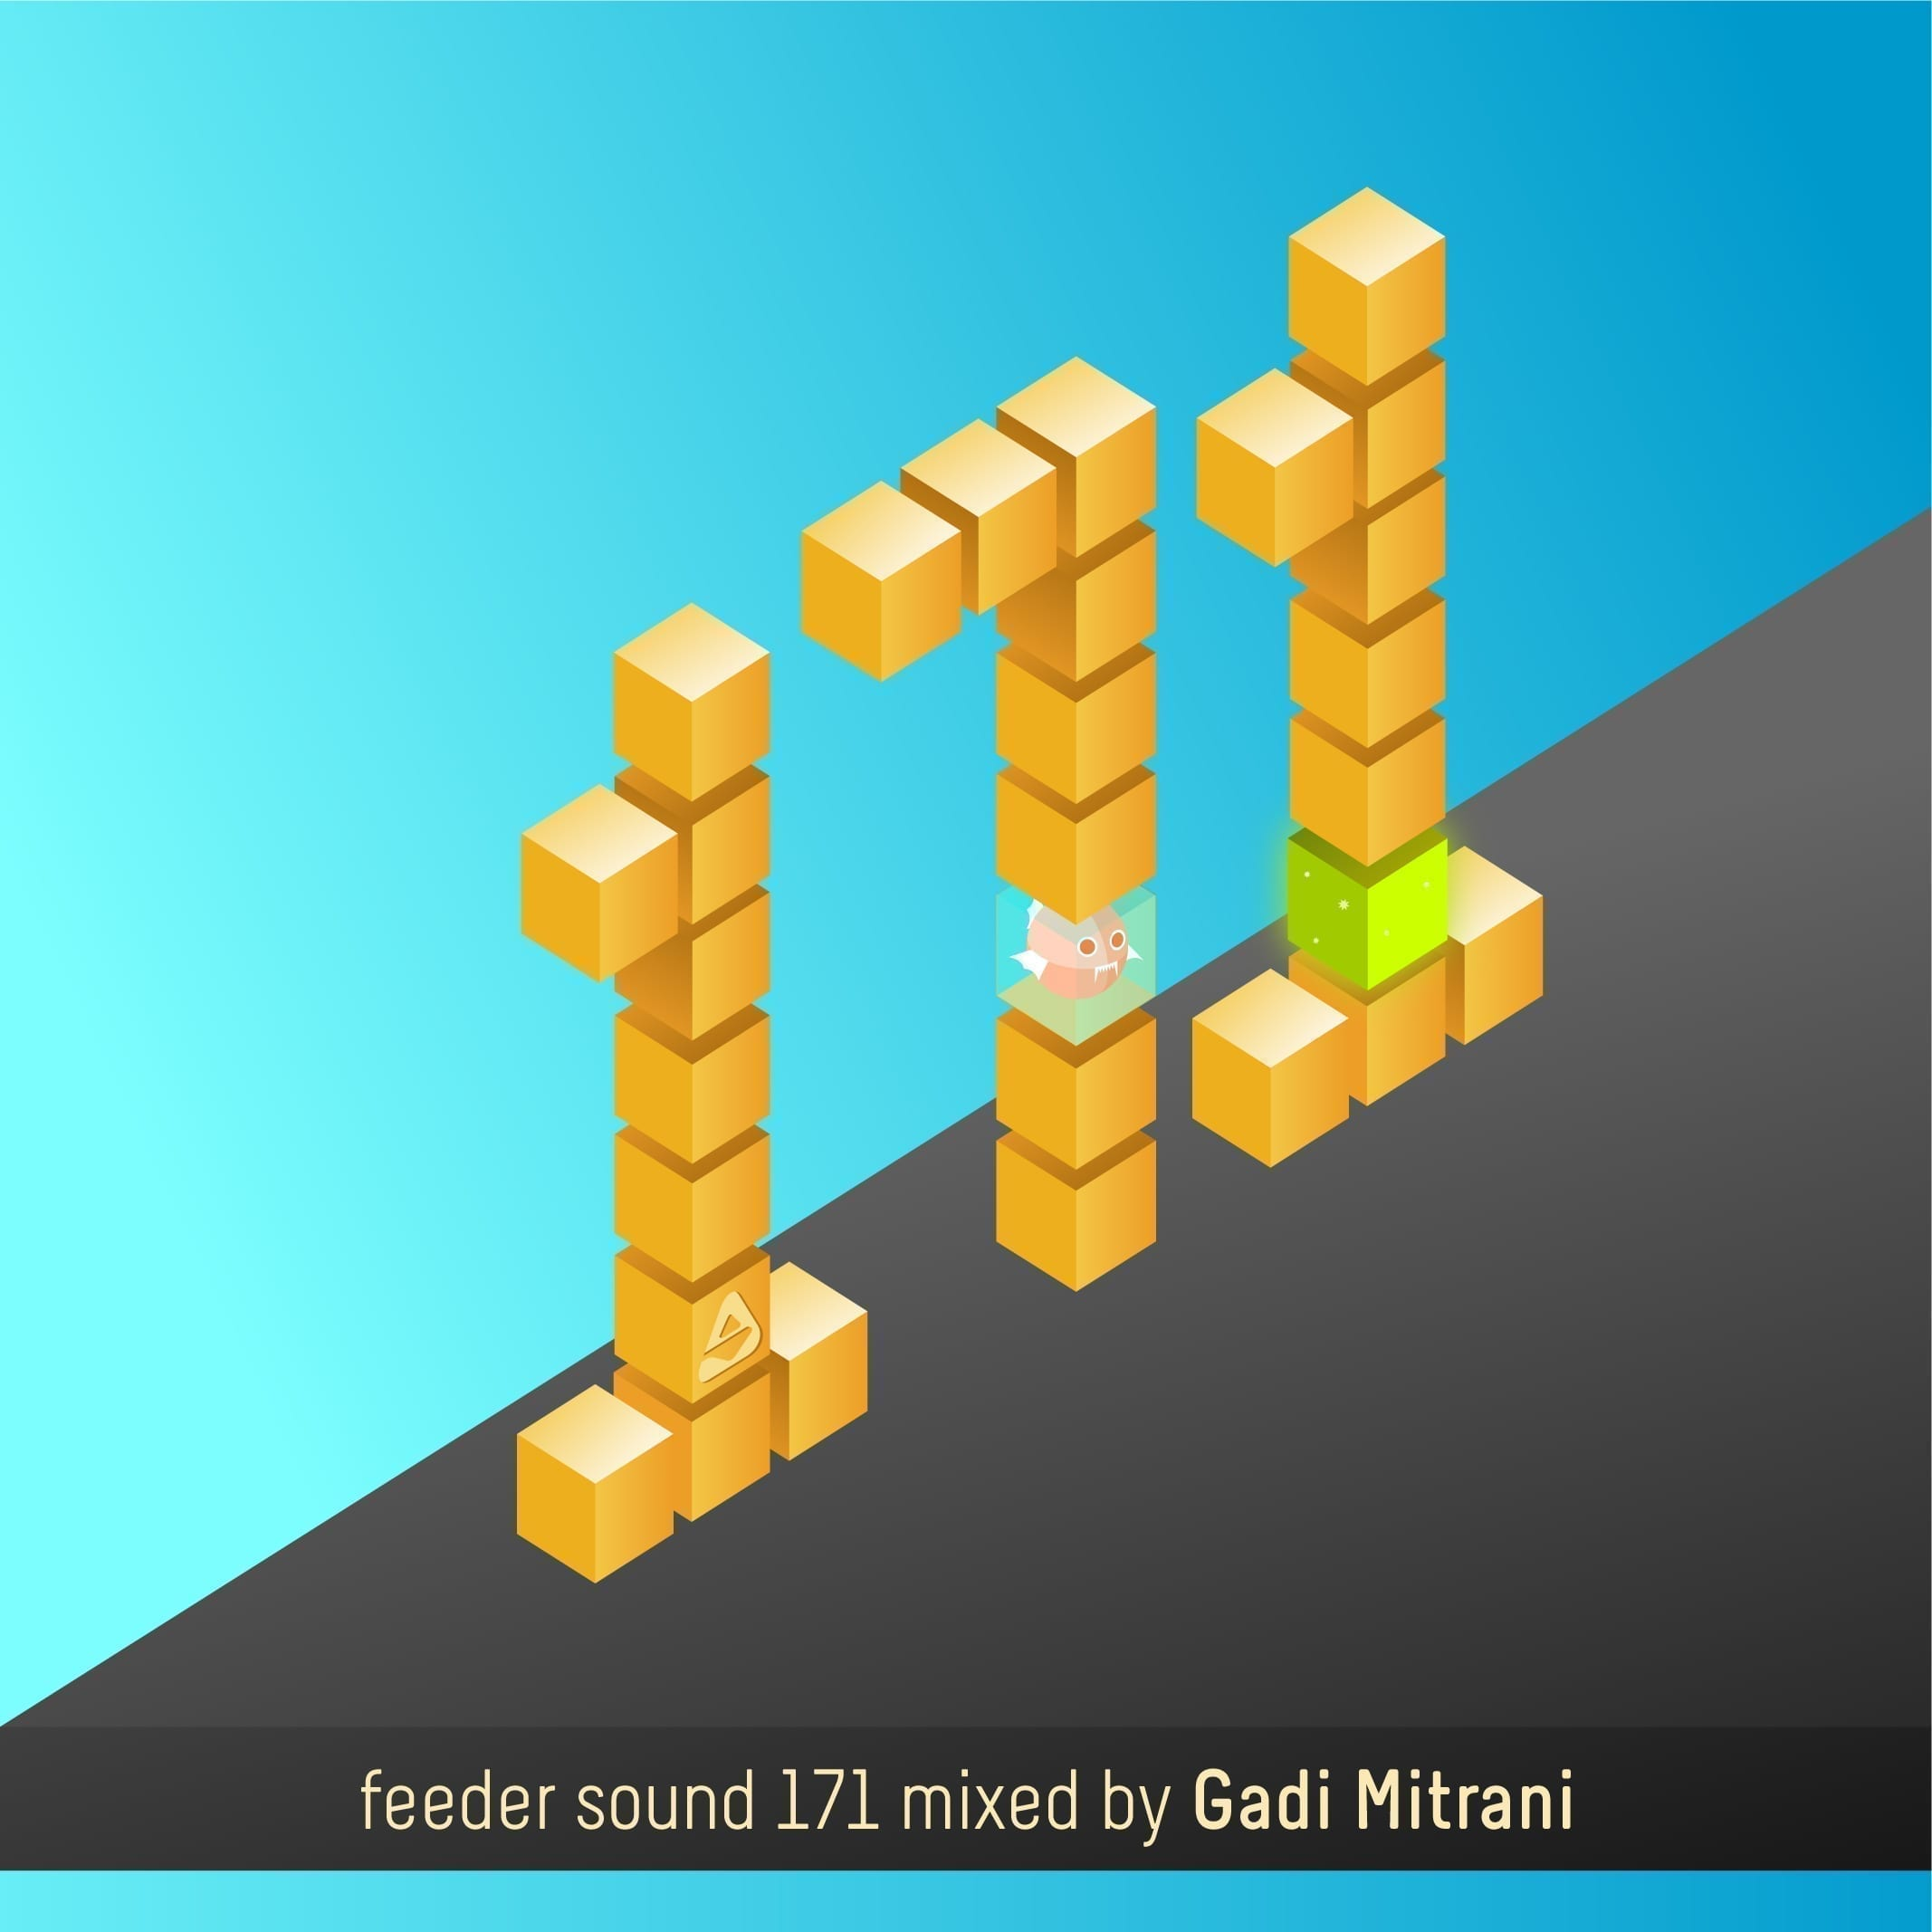 feeder sound 171 mixed by Gadi Mitrani